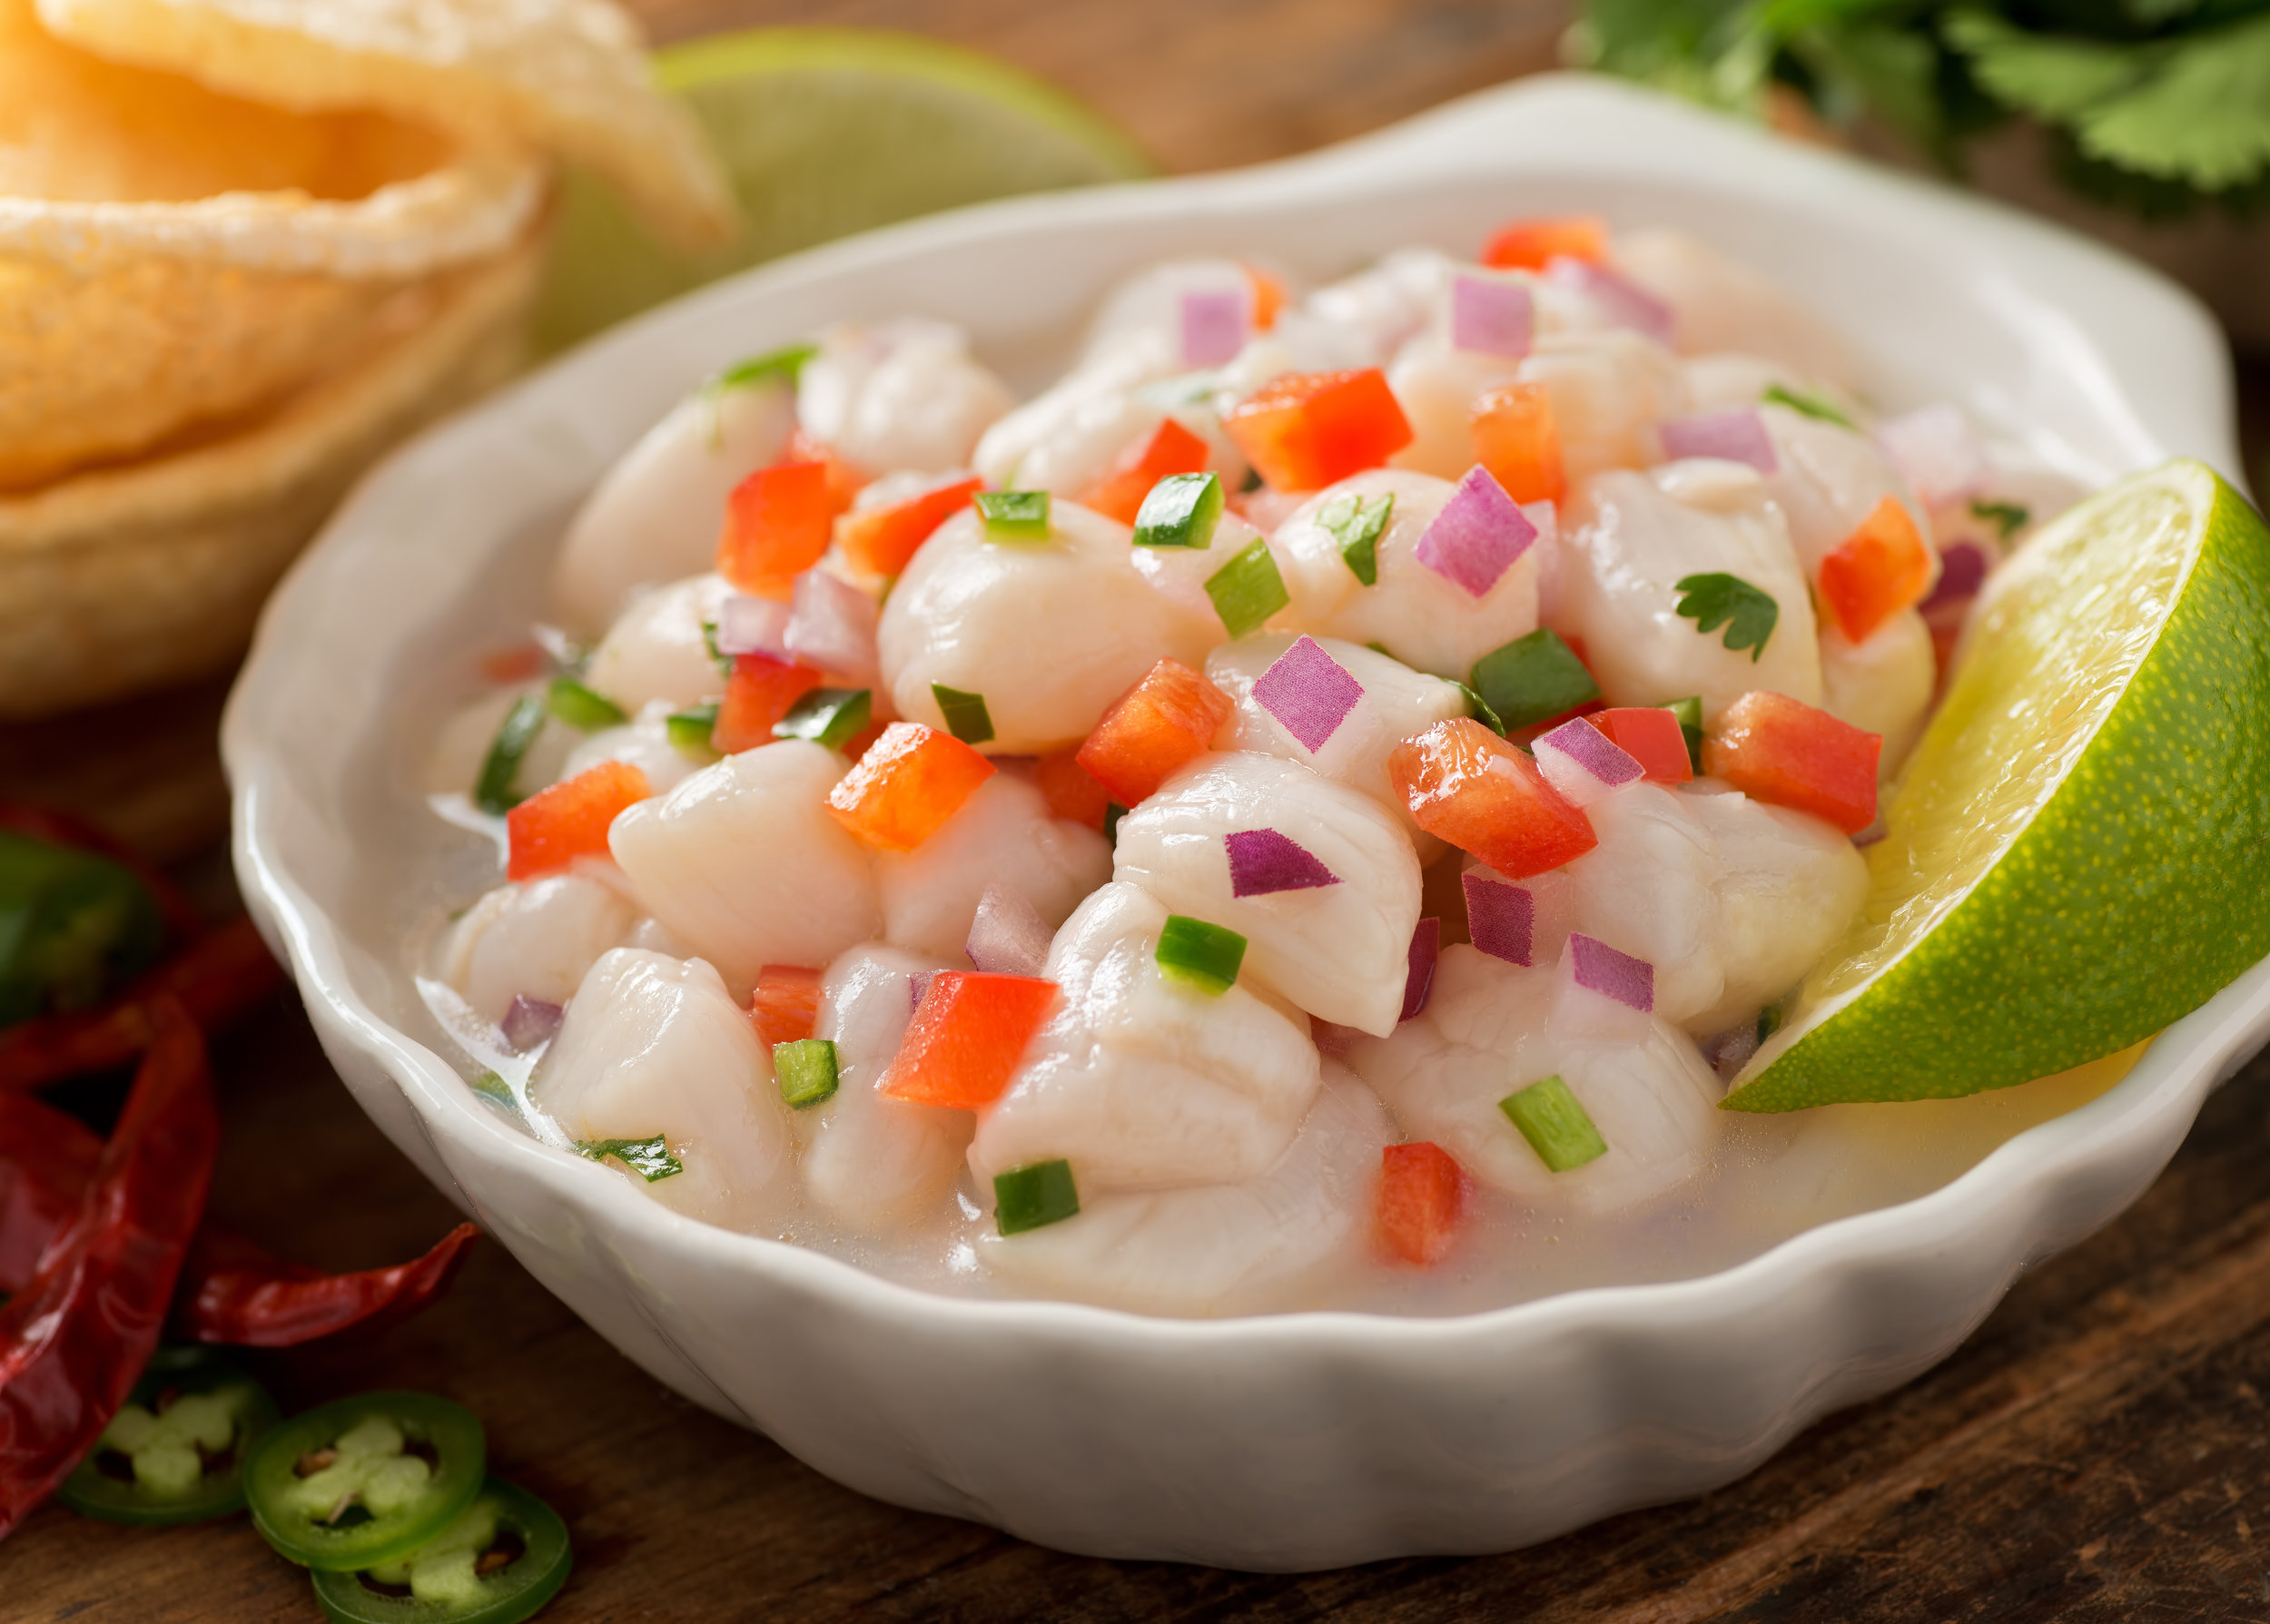 Ceviche is fish marinated with citrus juice